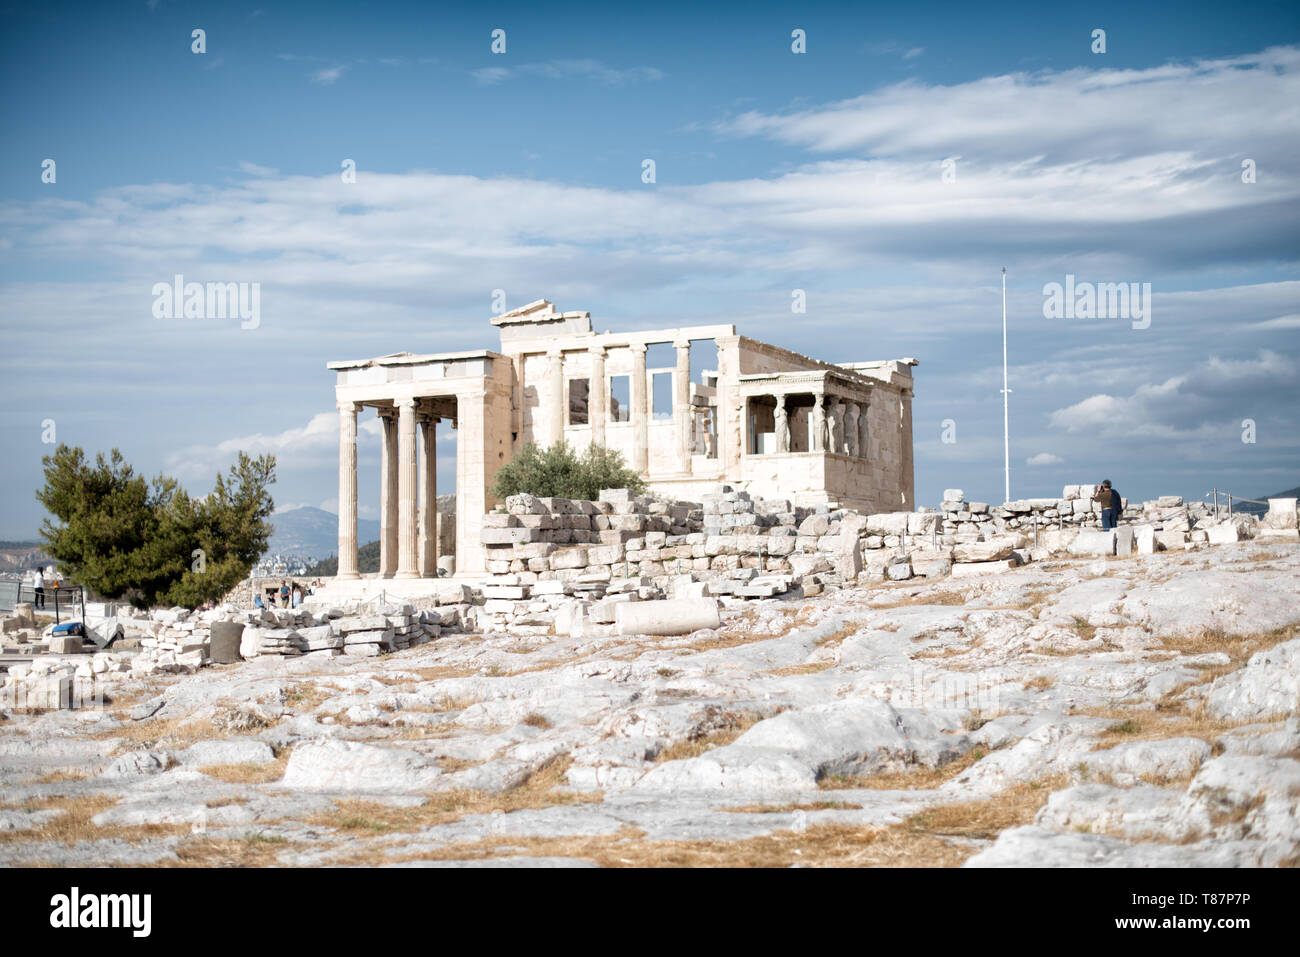 The Acropolis of Athens is an ancient citadel standing on a rocky outcrop above Athens, Greece. It is one of the most famous archeological sites in th - Stock Image